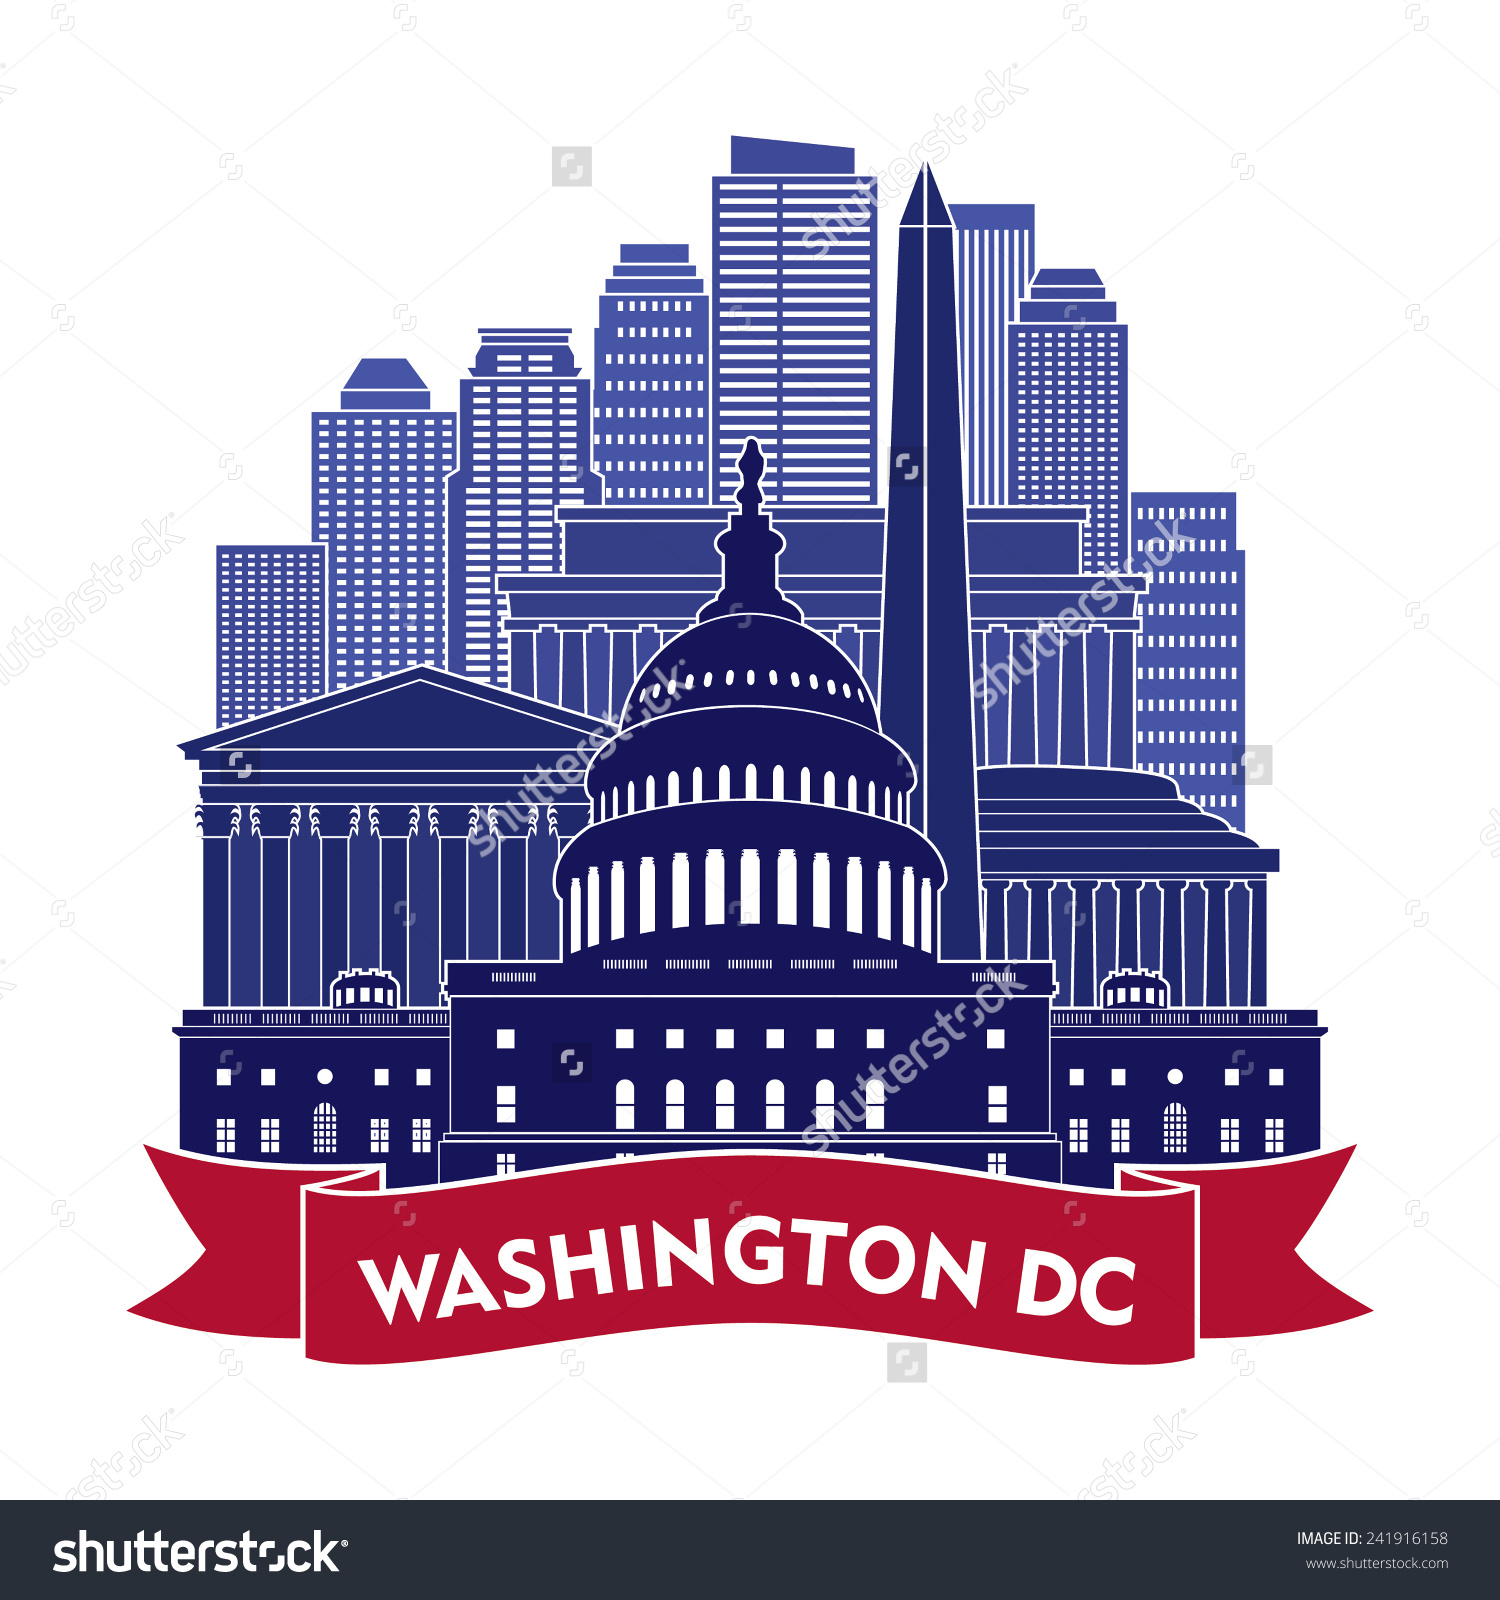 Washington Dc Skyline Vector Illustration Stock Vector 241916158.